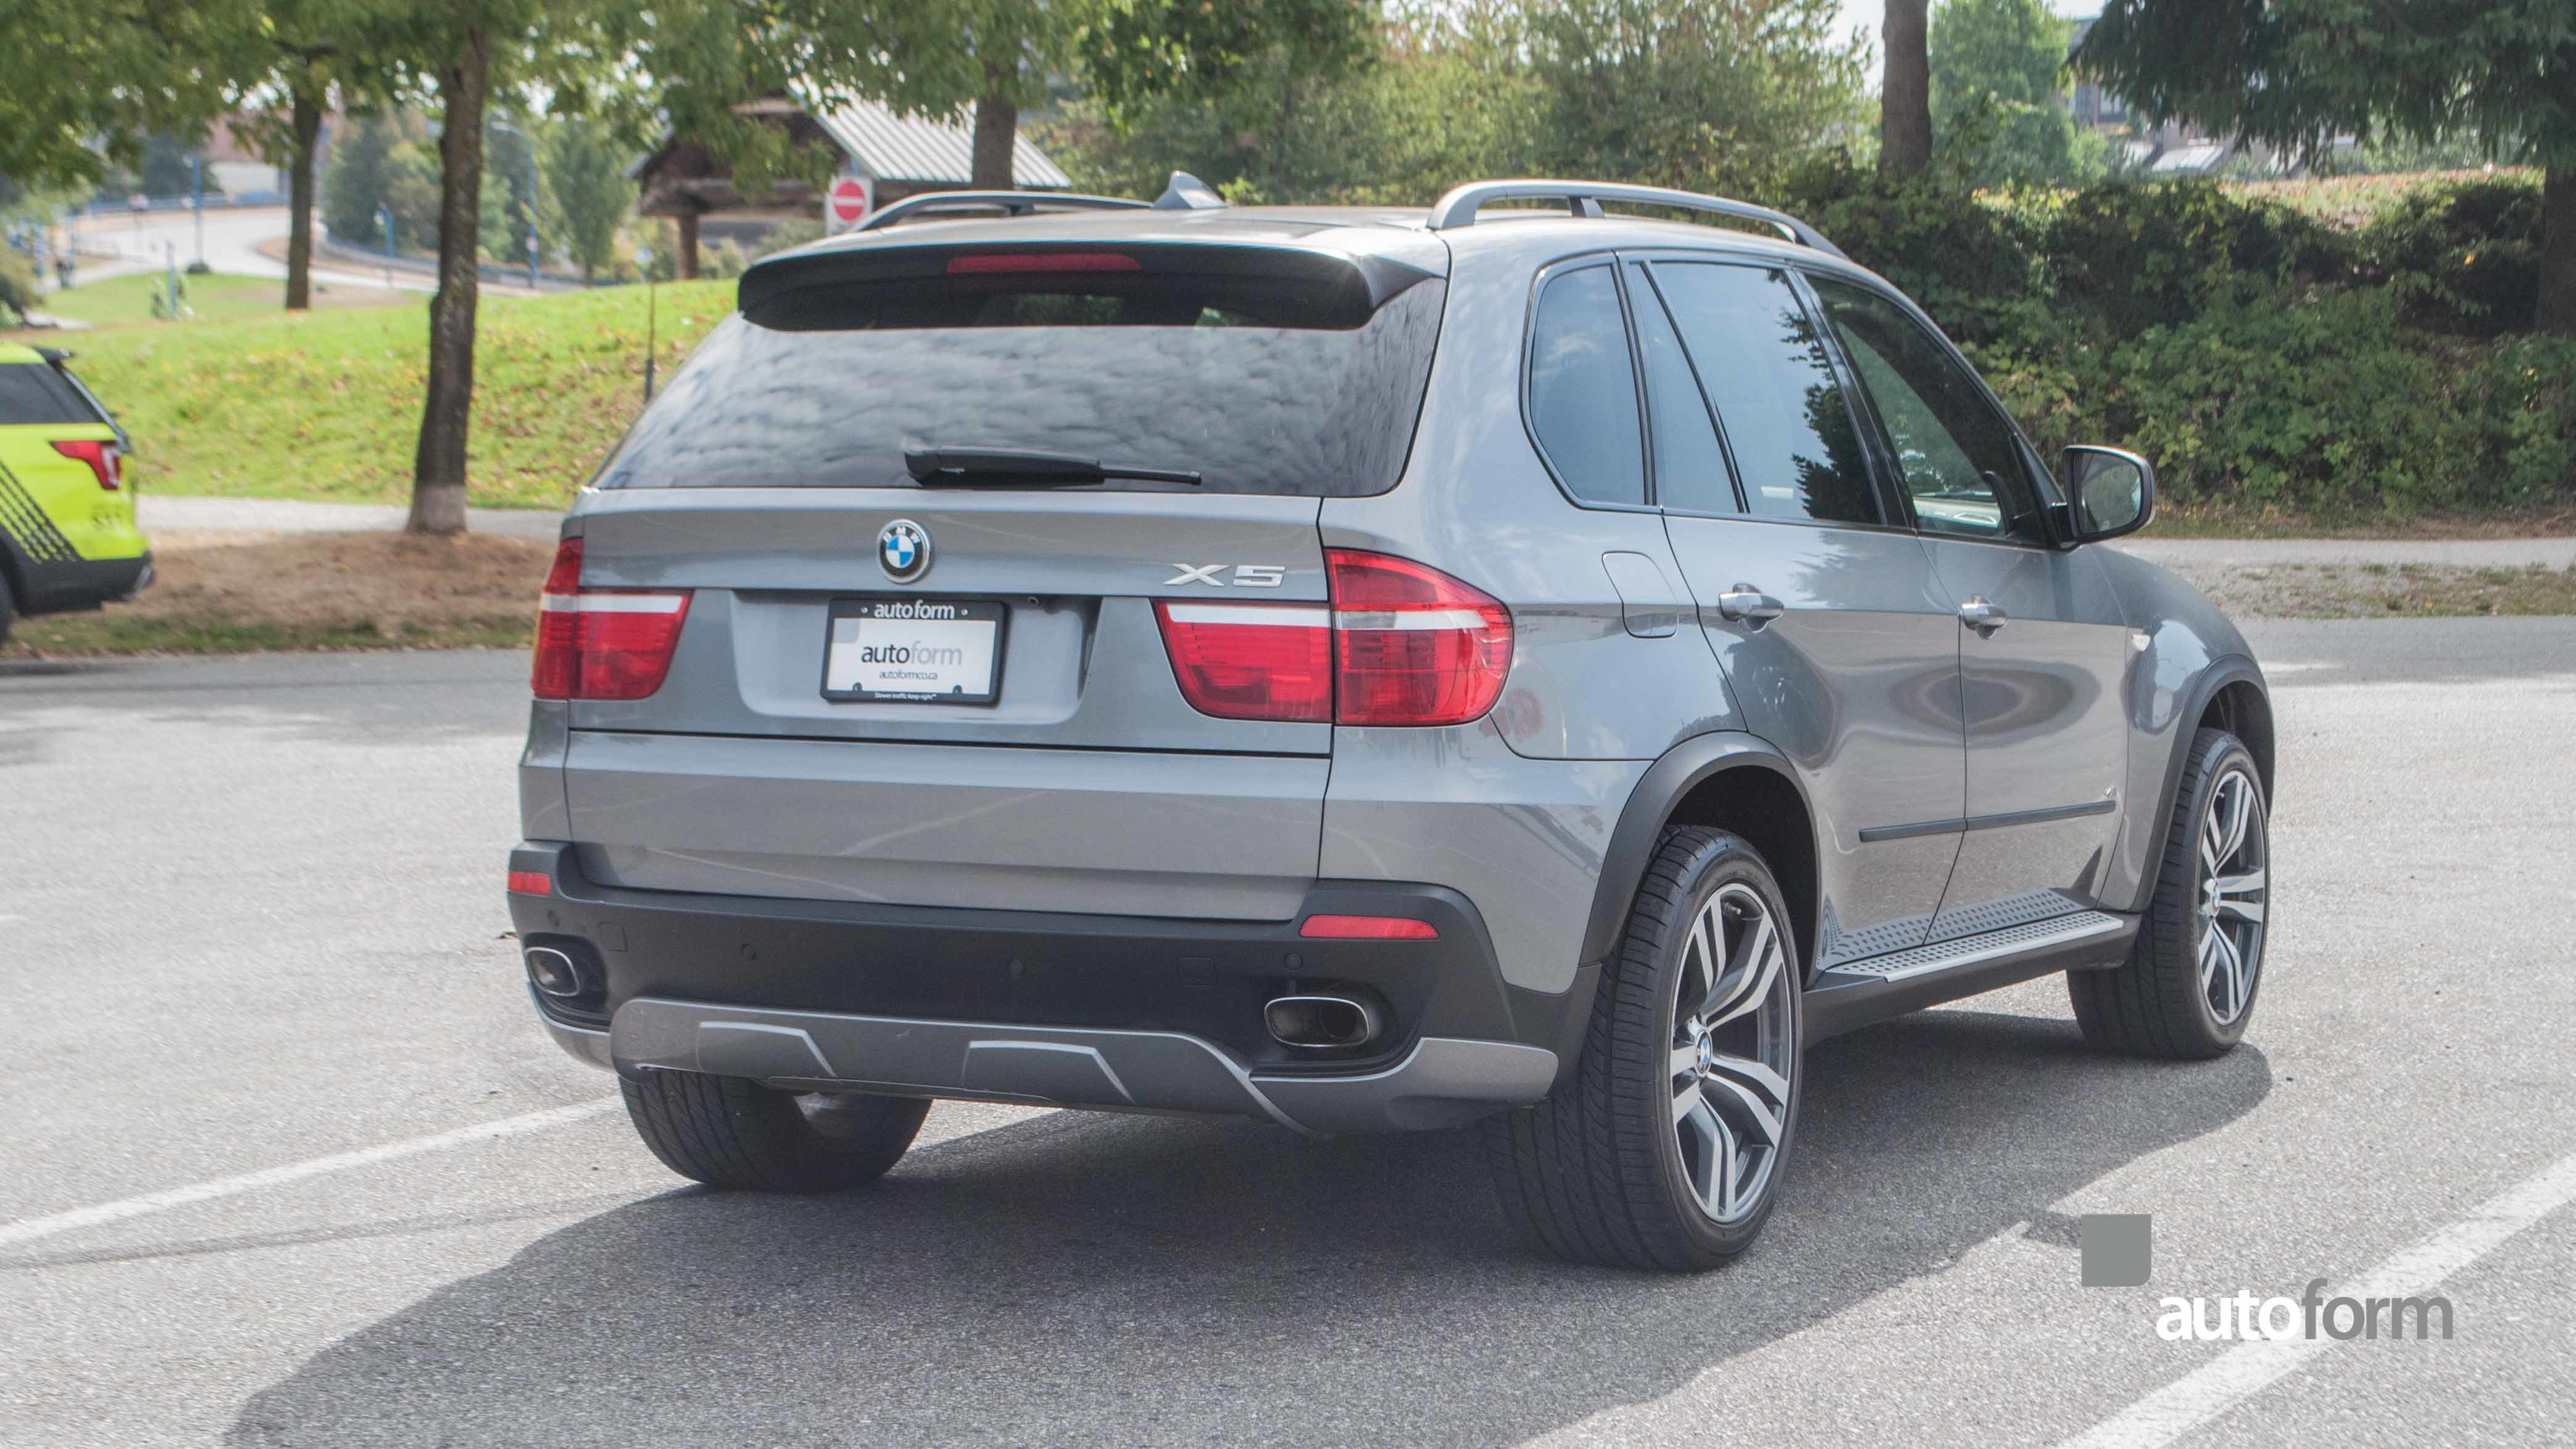 examples acura fit rack mdx class bmw trailer honda bike installs and hitch